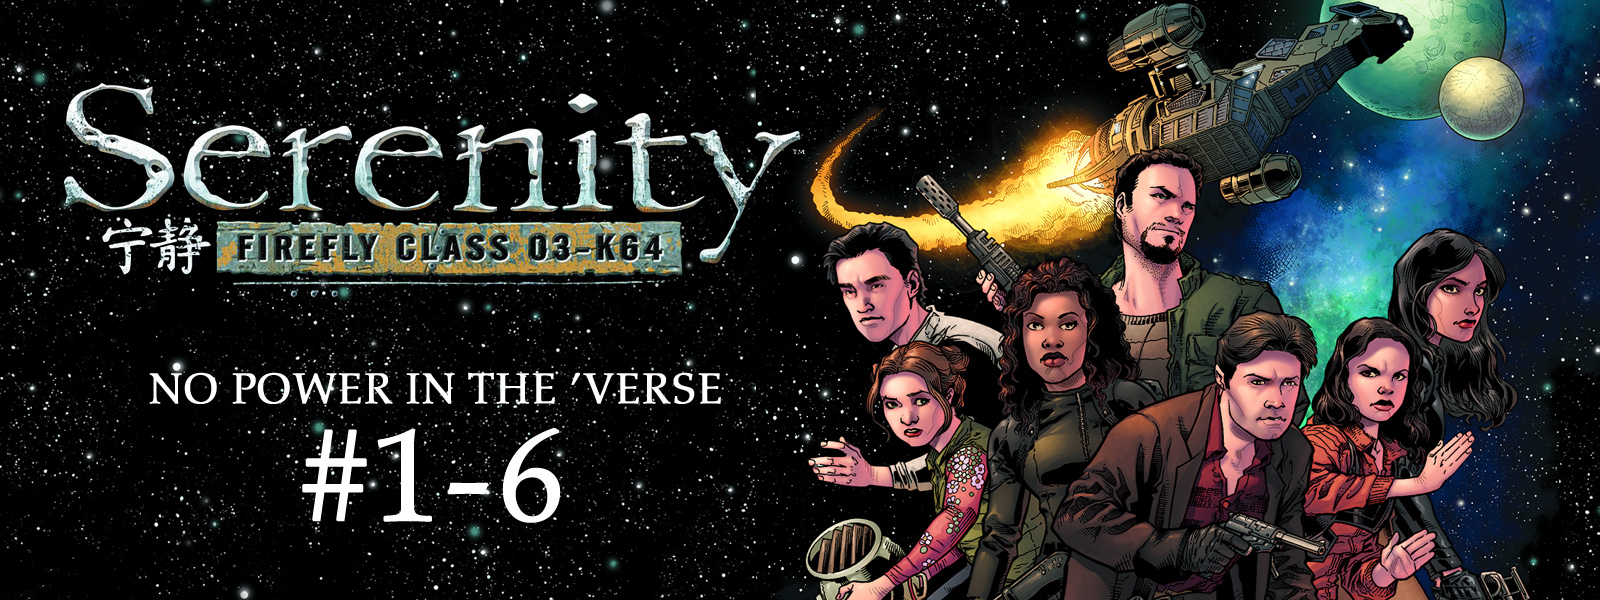 Serenity: No Power In The Verse - Comic Subscription